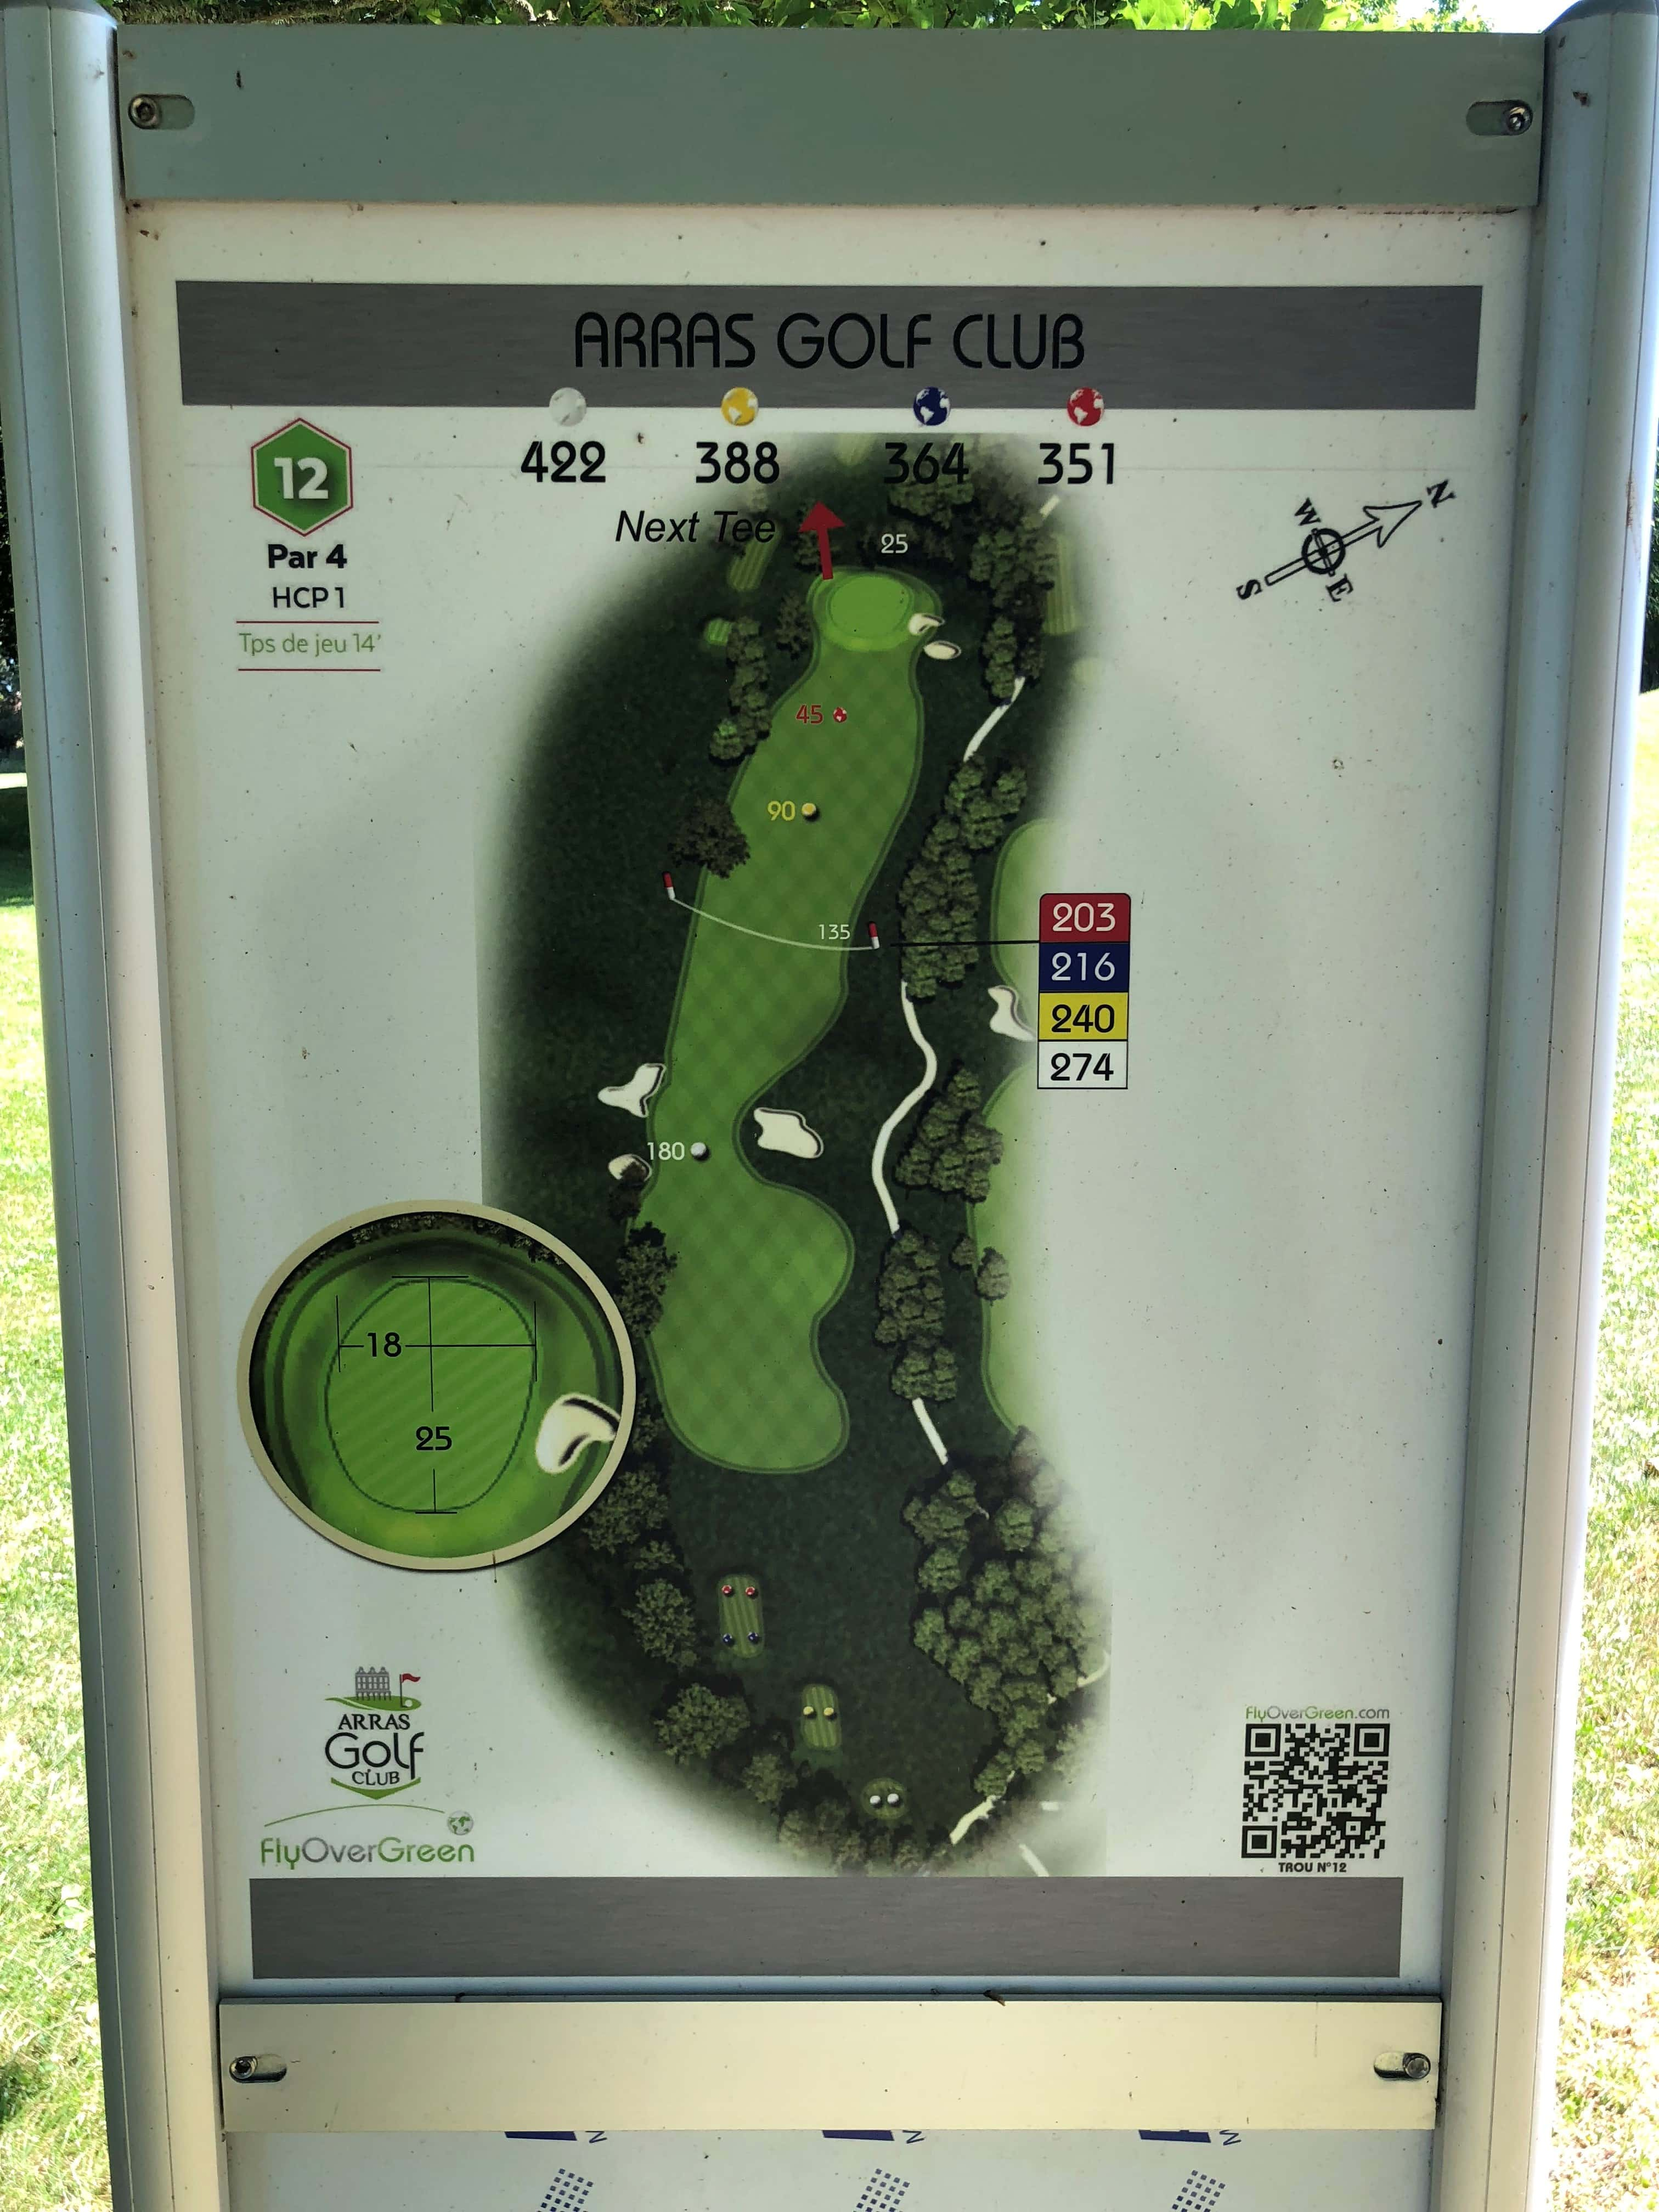 Tee 12, Arras Golf Club, Arras Golf Resort, Parcours La Vallée, Distance 422m, Distance 388m, Distance 364m, Distance 351m, Par 4